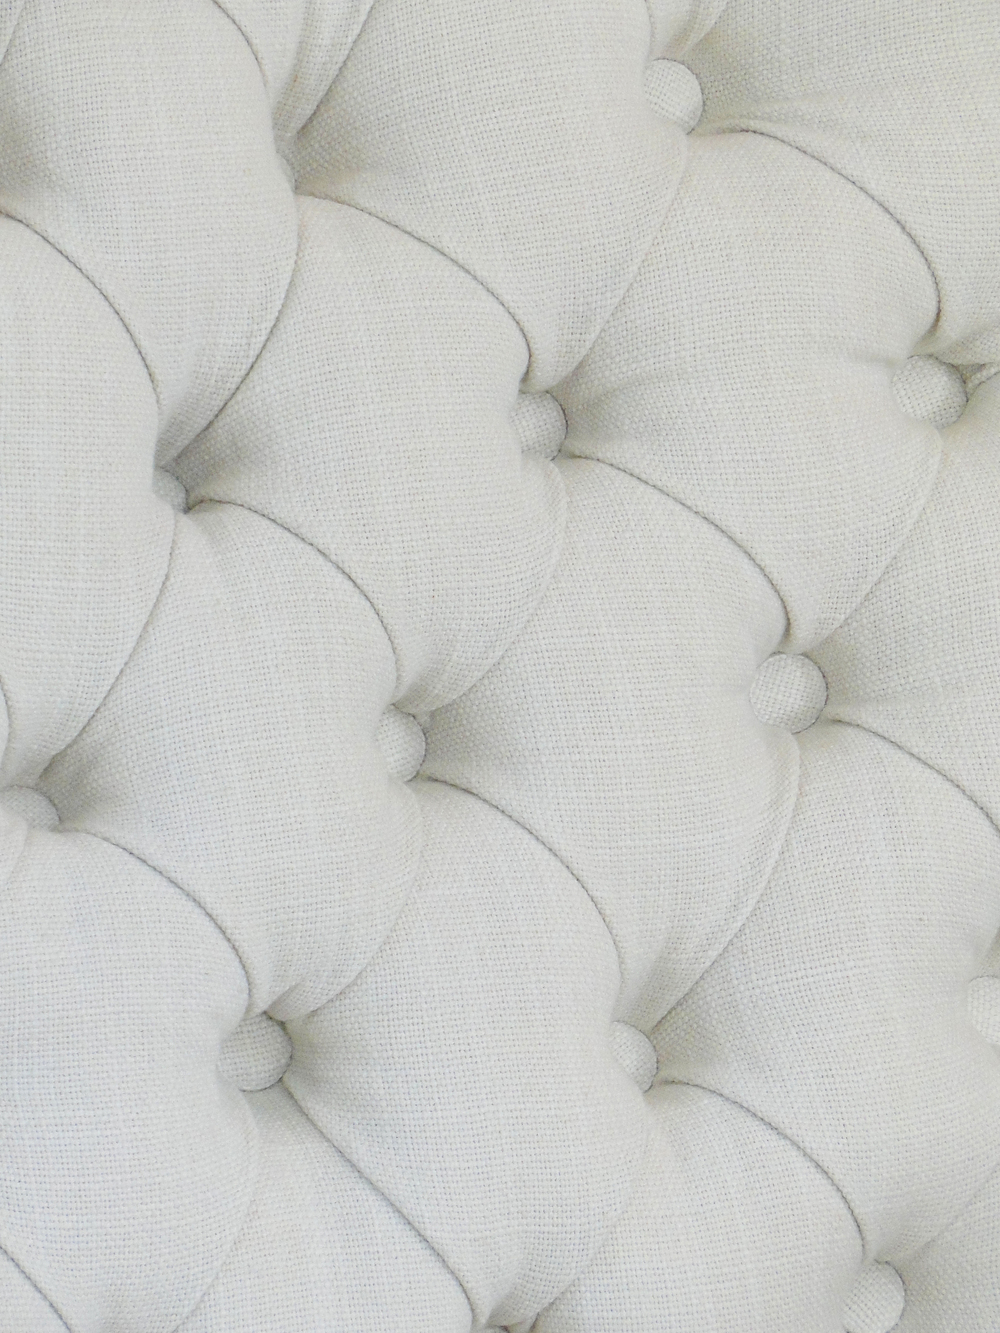 Close up of tufted back